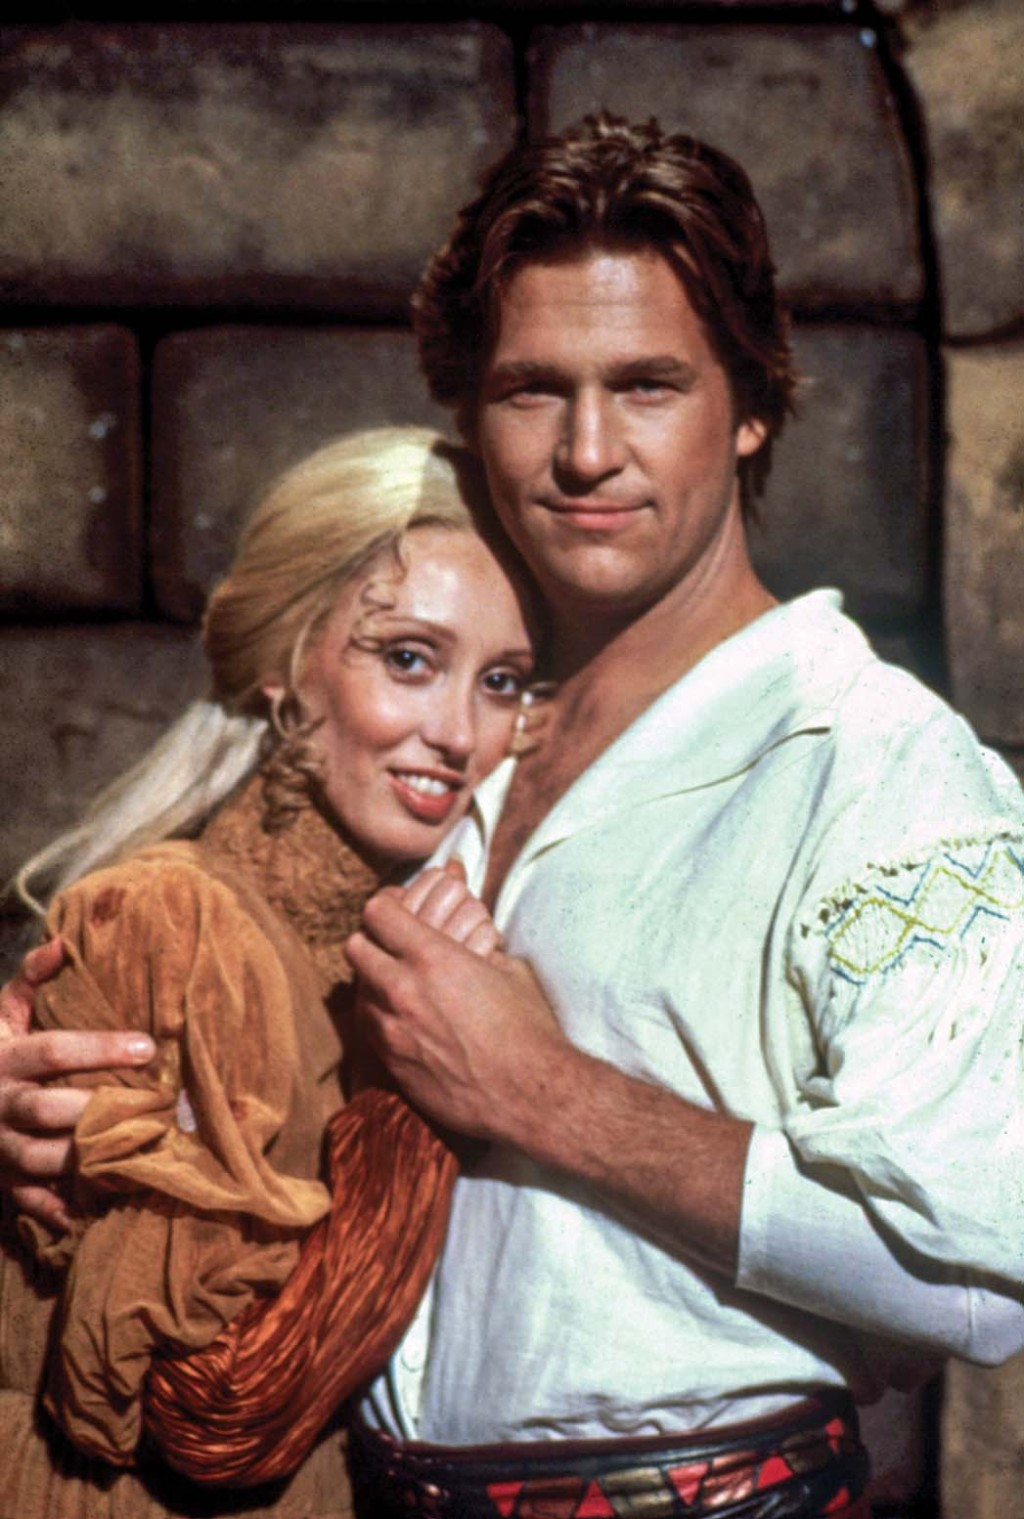 Duvall with Jeff Bridges in the Faerie Tale Theatre version of Rapunzel in 1983.